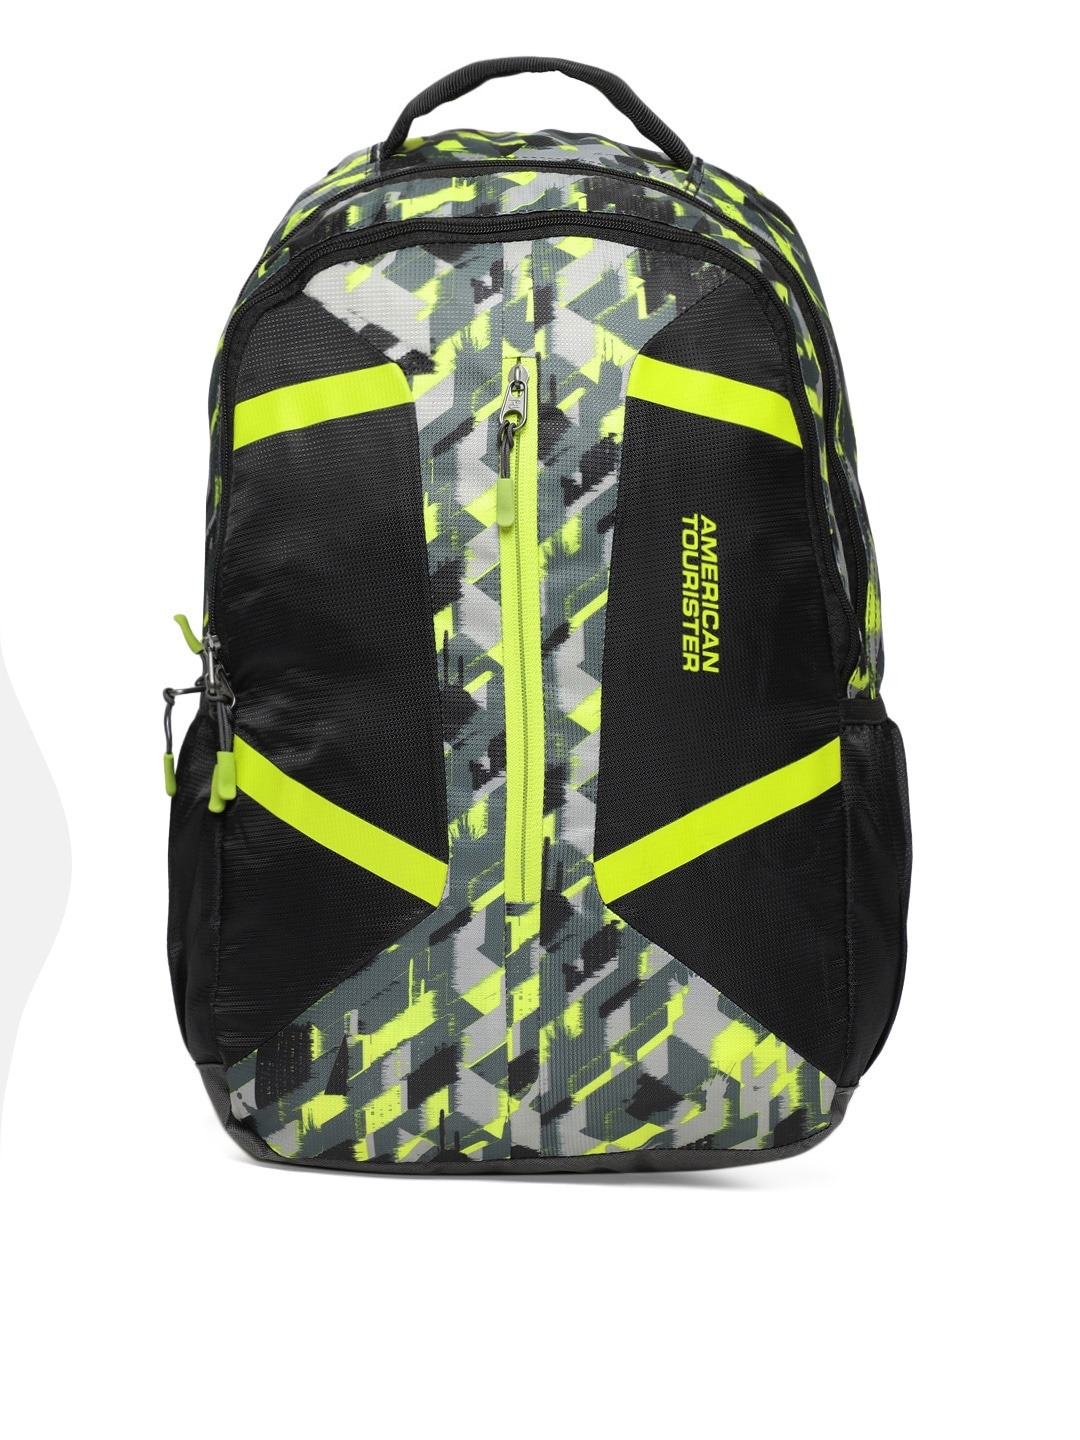 05ca59126 American Tourister Backpacks Shirts Tshirts - Buy American Tourister  Backpacks Shirts Tshirts online in India